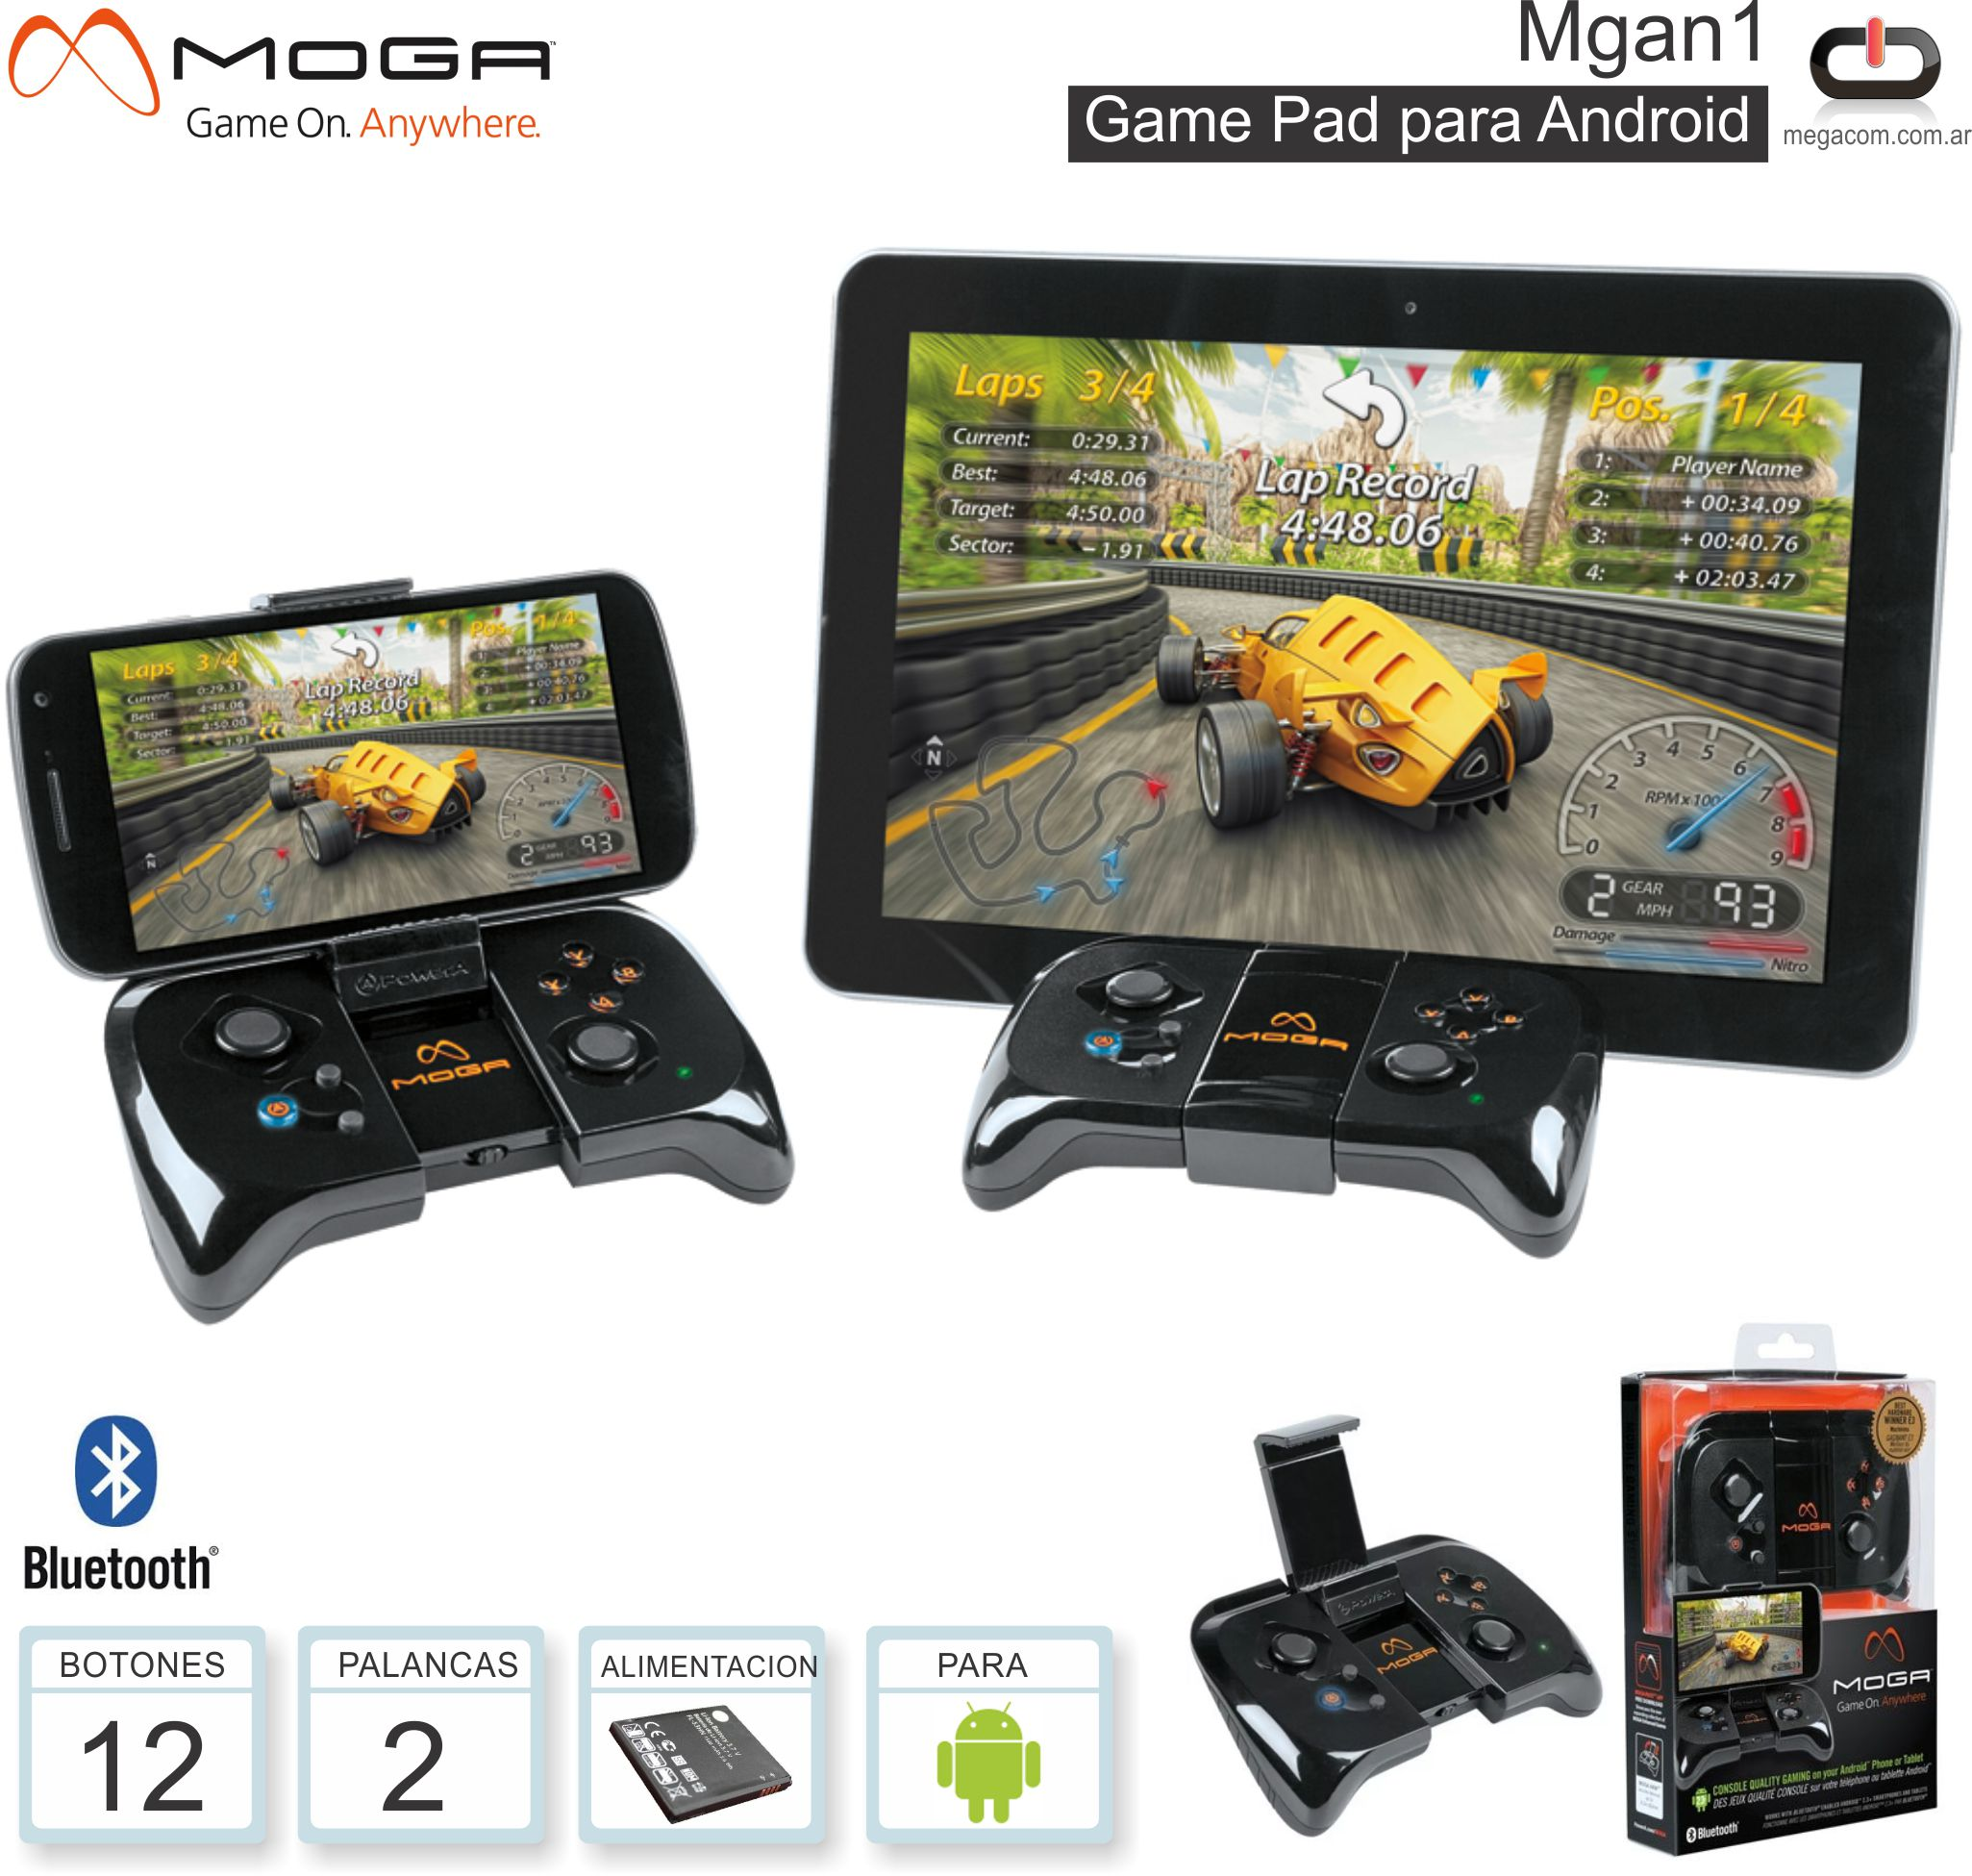 Game Pad Android MOGA MGAN1